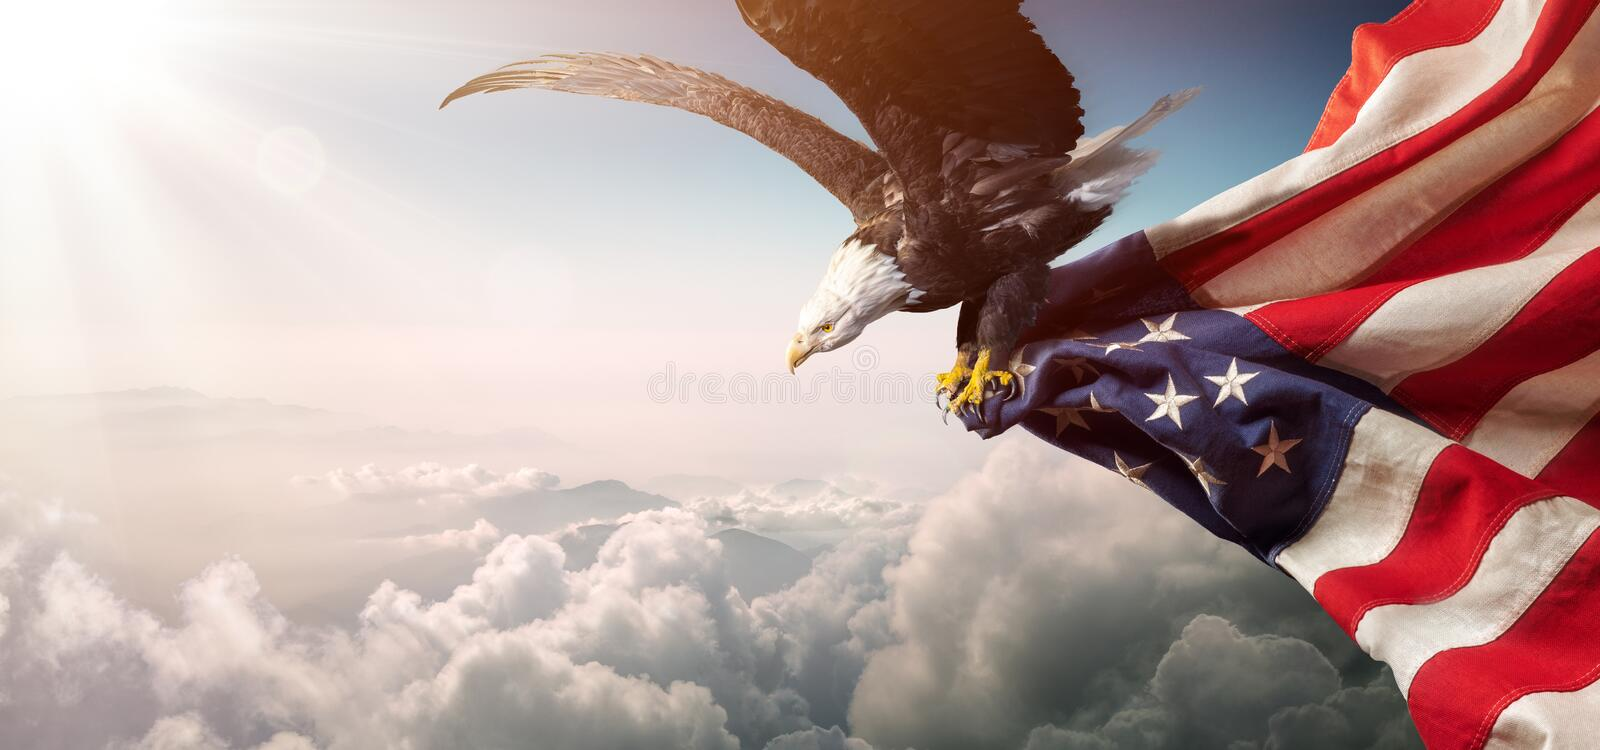 Eagle With American Flag Flies